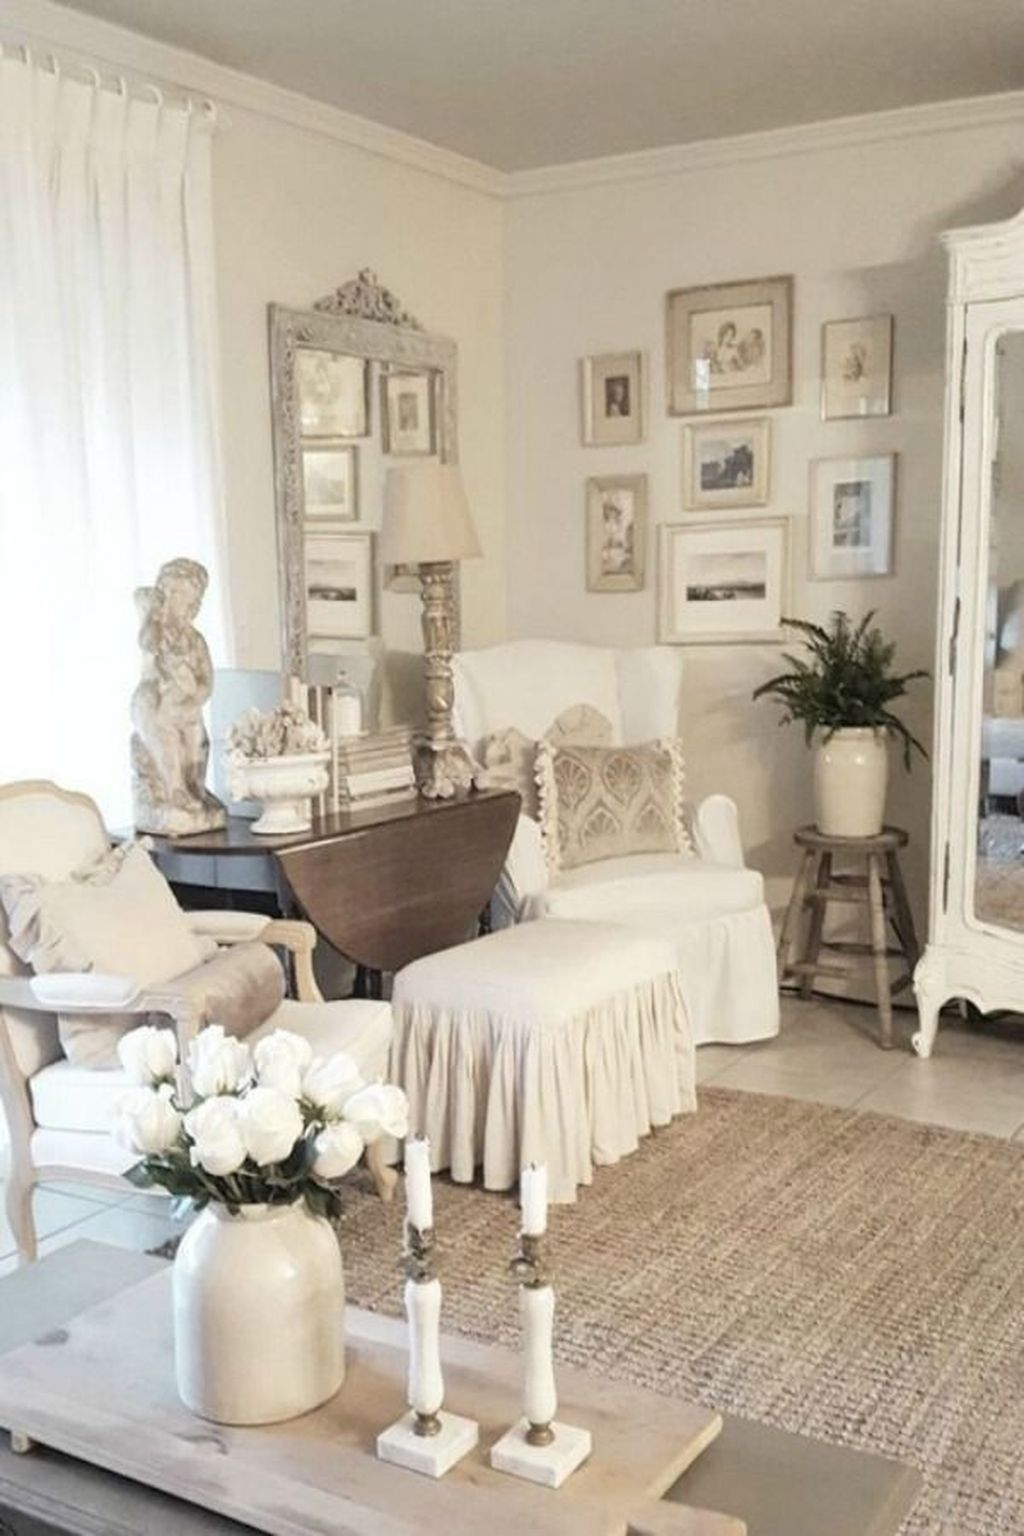 The Best Country Style Interior Design Ideas 17